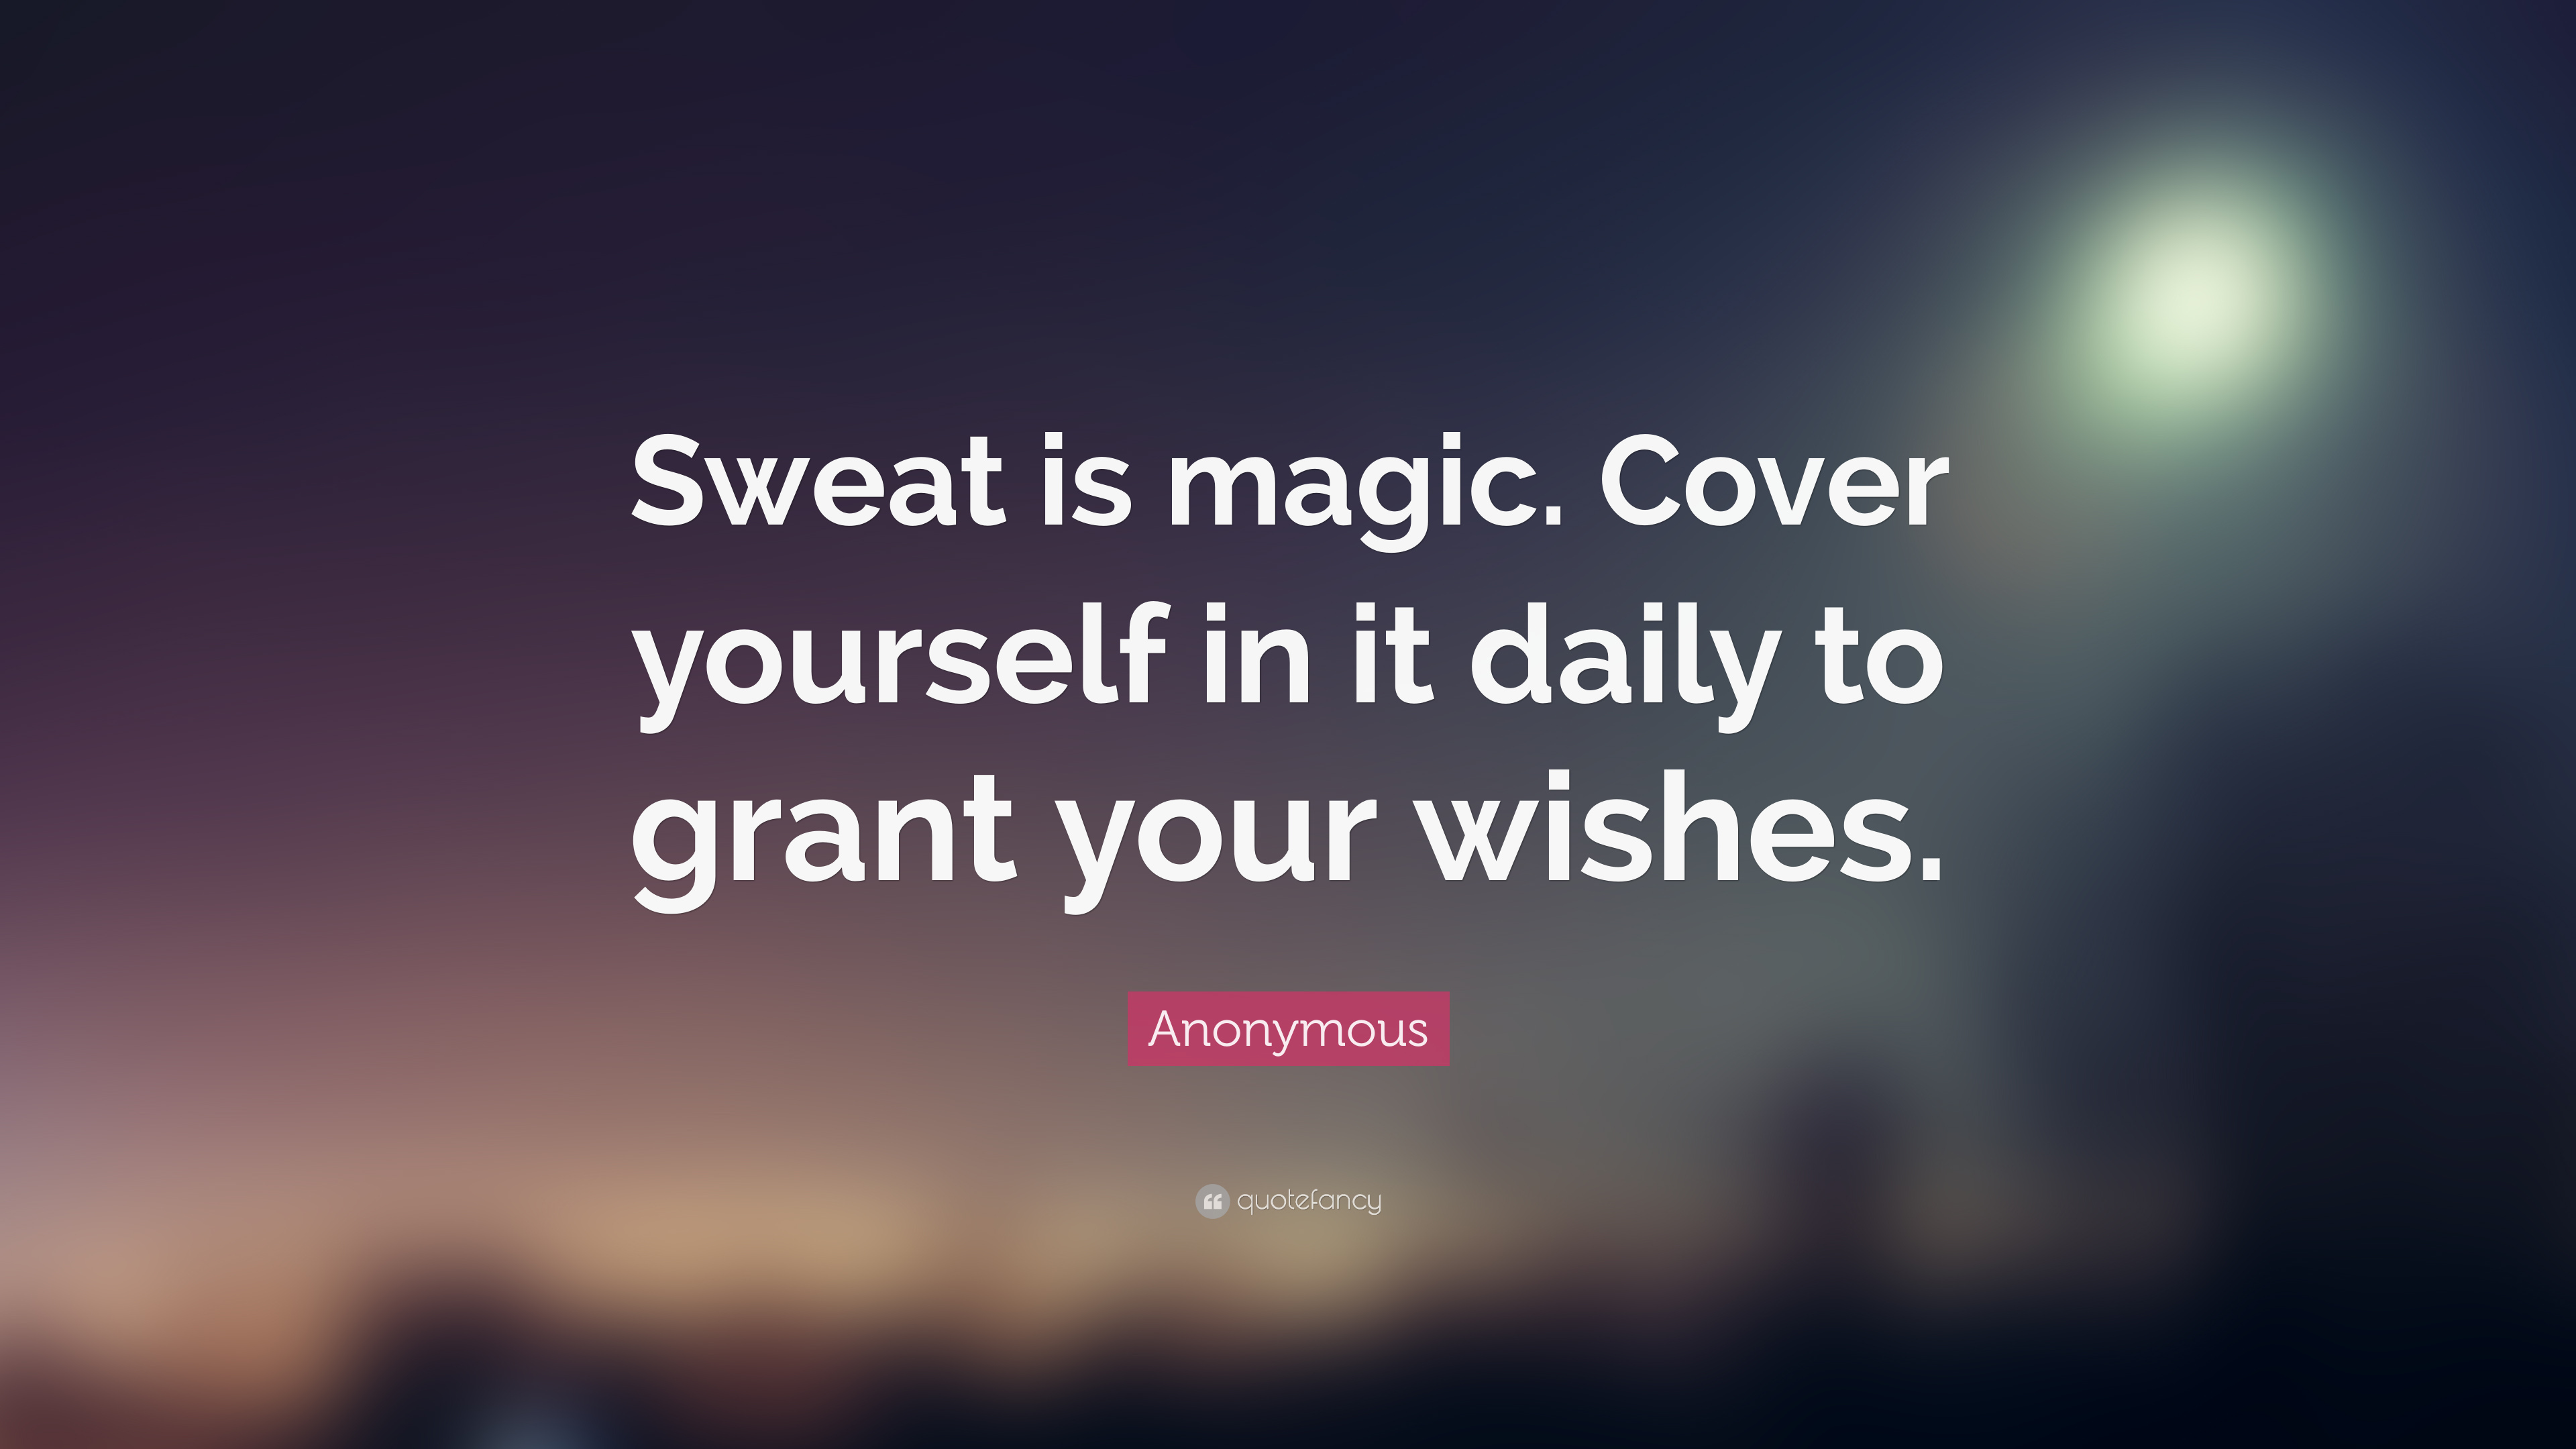 Image of: Magic Anonymous Quote sweat Is Magic Cover Yourself In It Daily To Grant Your Quotefancy Anonymous Quote sweat Is Magic Cover Yourself In It Daily To